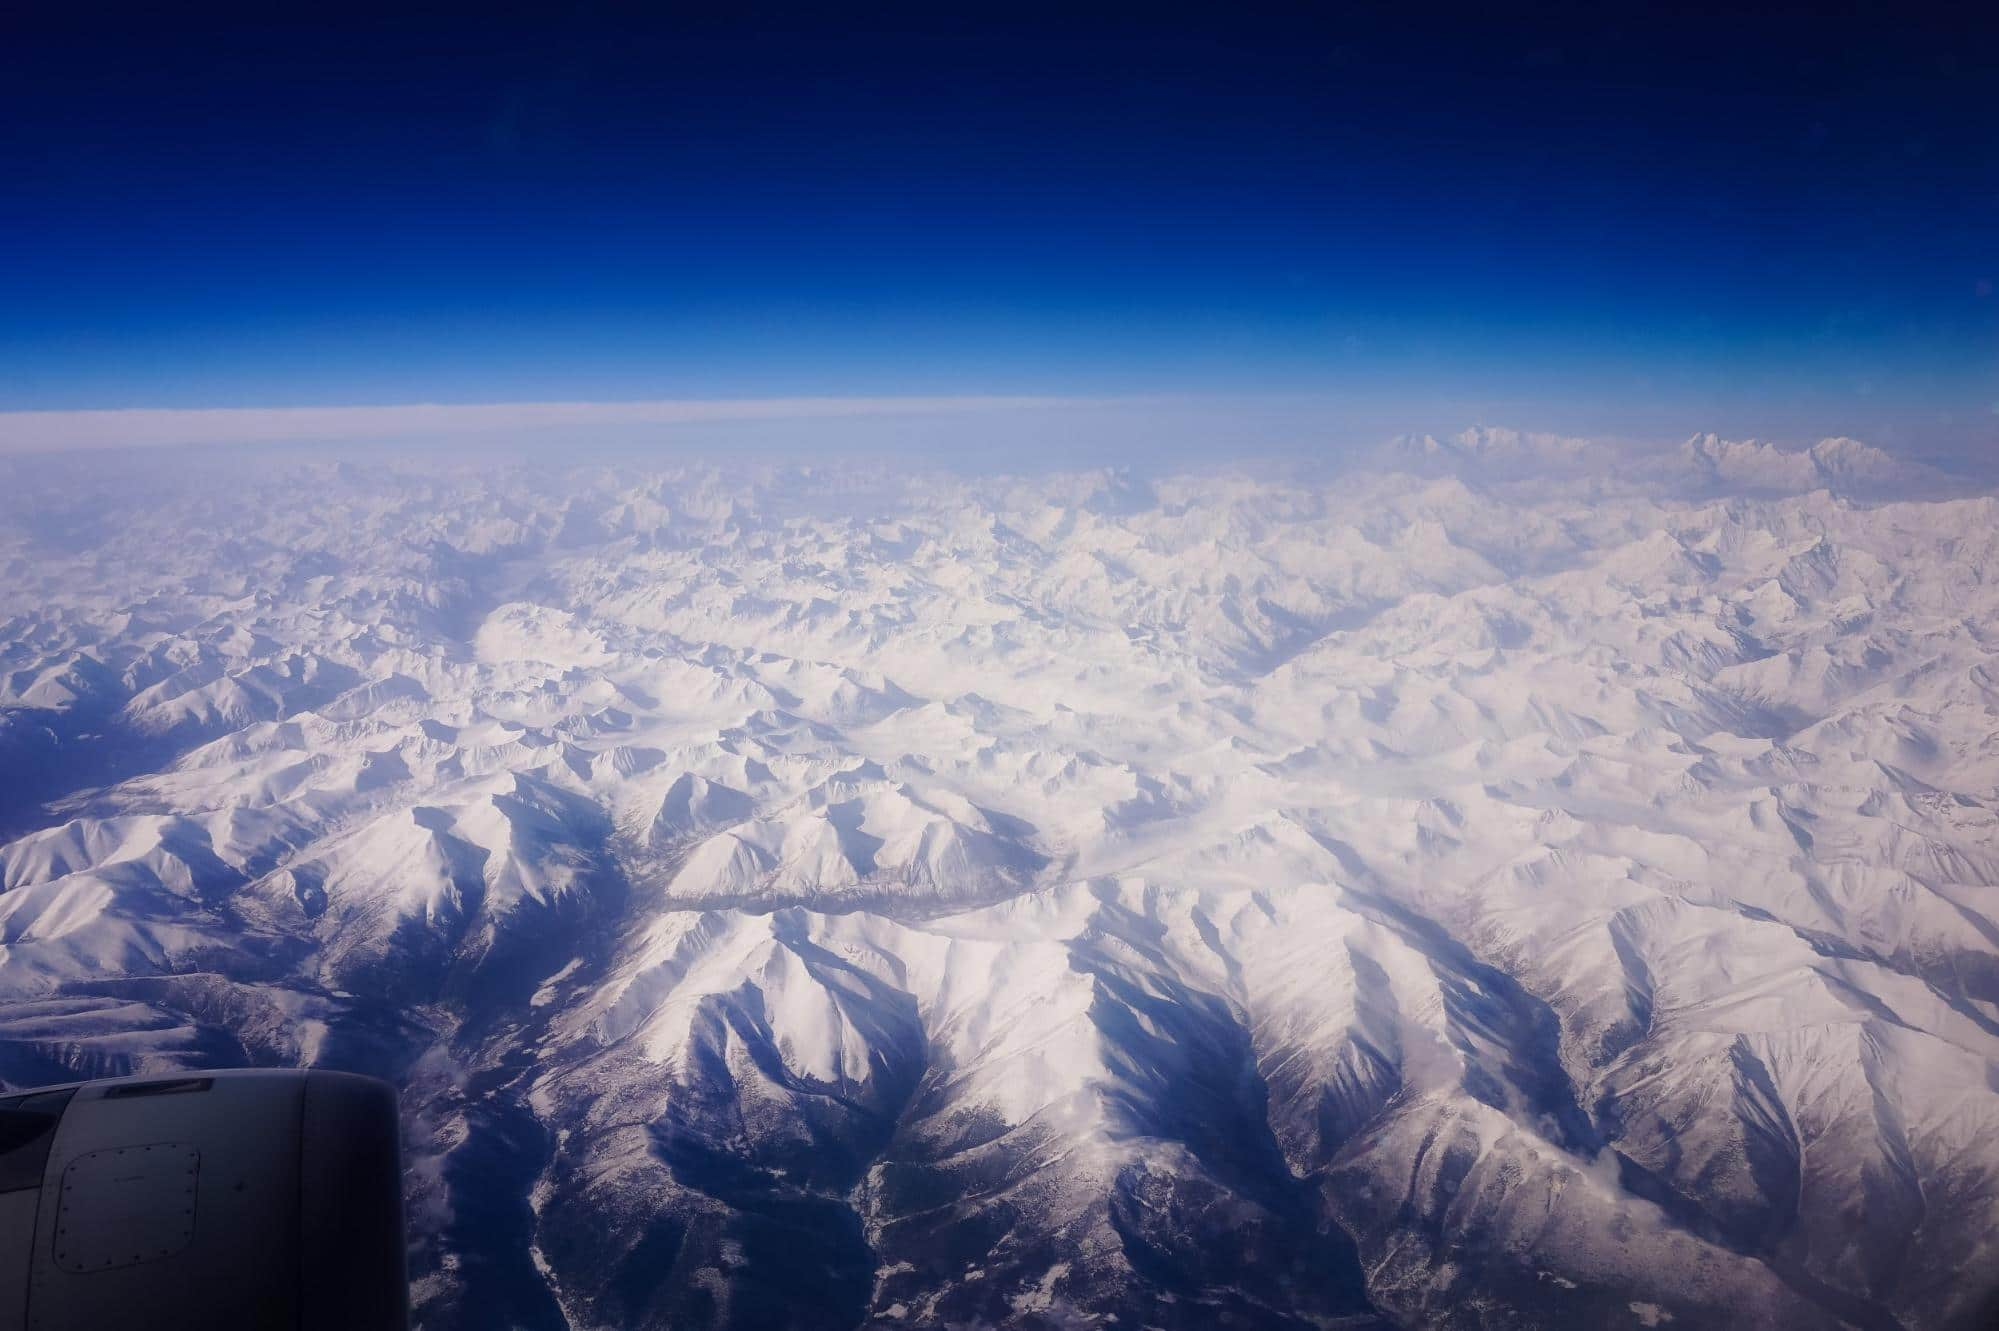 Flying over the Himalayas to Lhasa